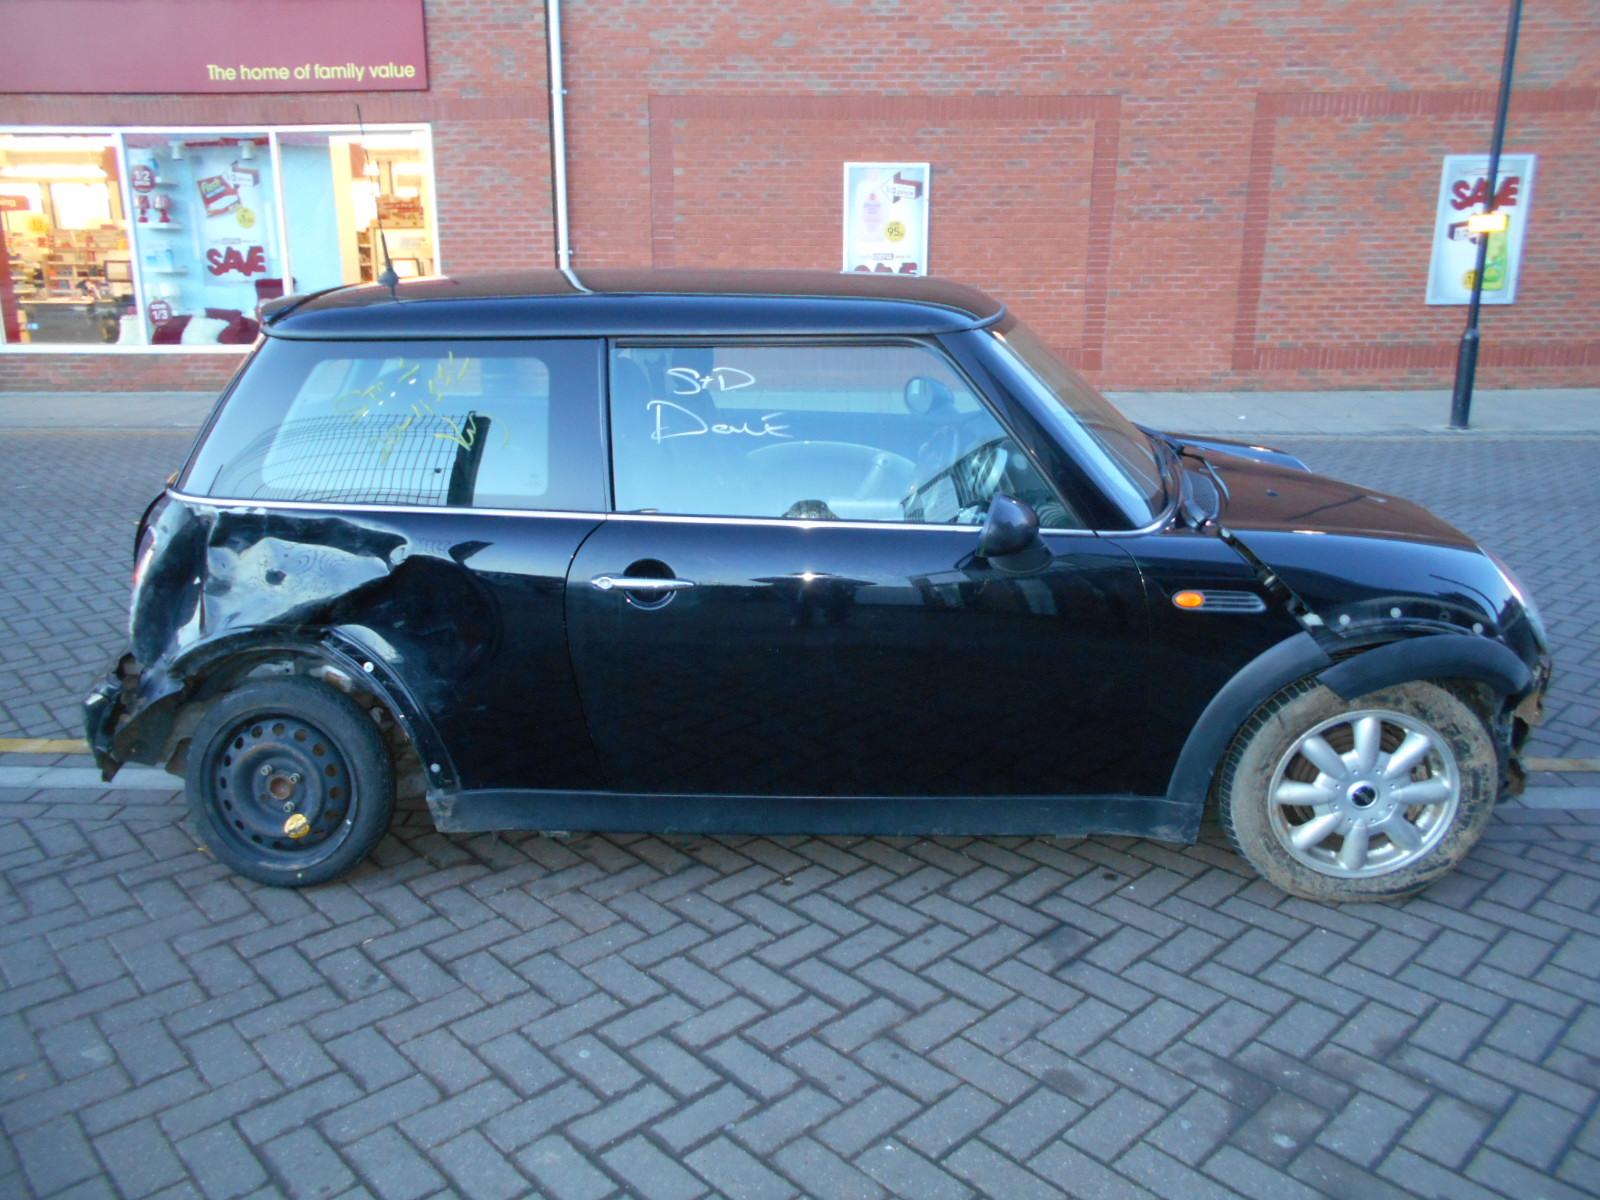 02 Black 1.6 BMW Mini One - 1